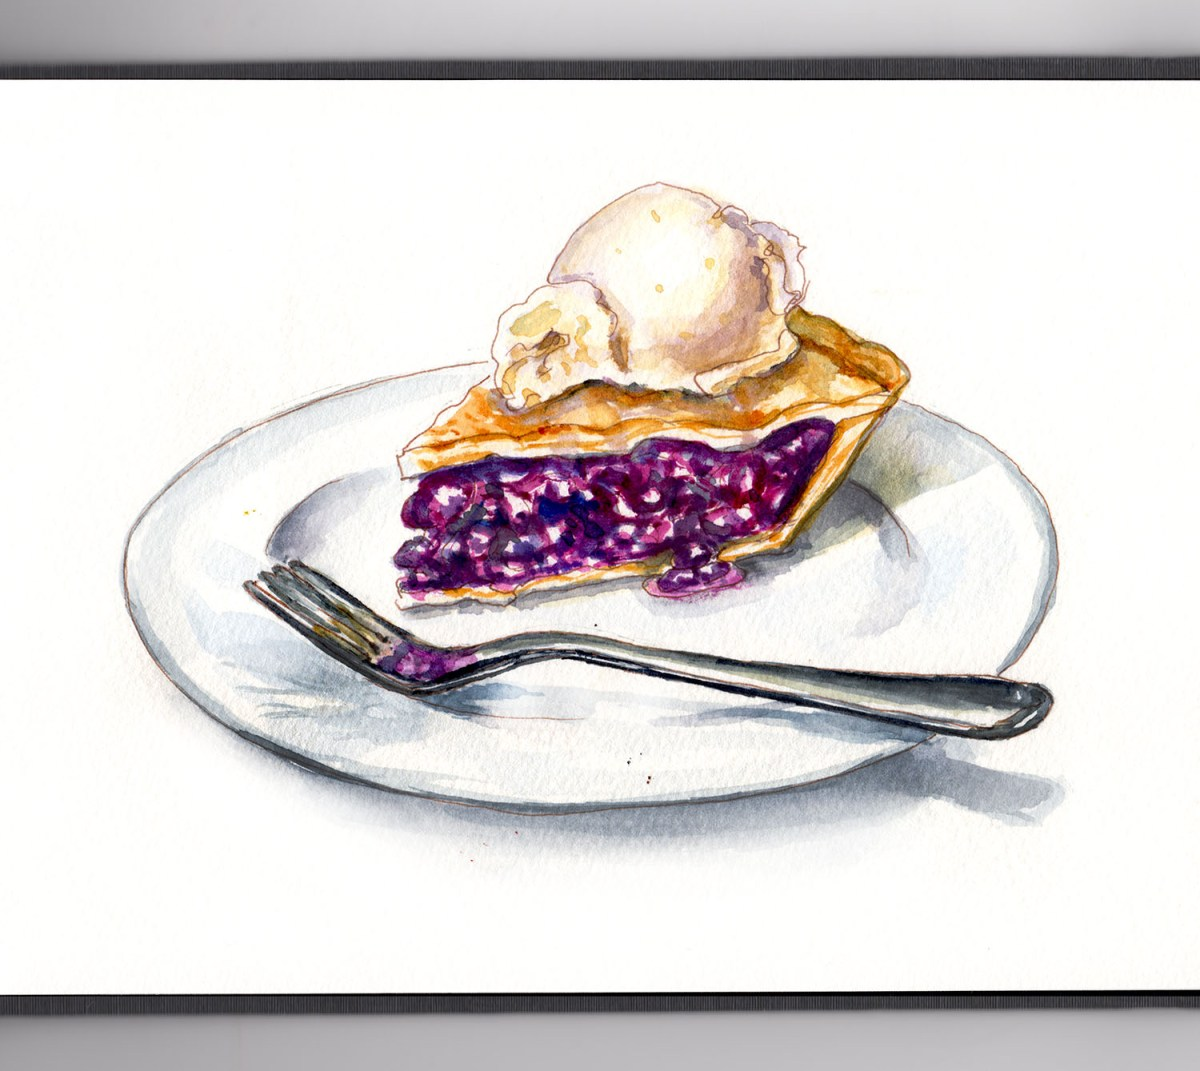 #WorldWatercolorGroup - Day 16 - A Perfectly Baked Pie - Blueberry Ice Cream - Doodlewash